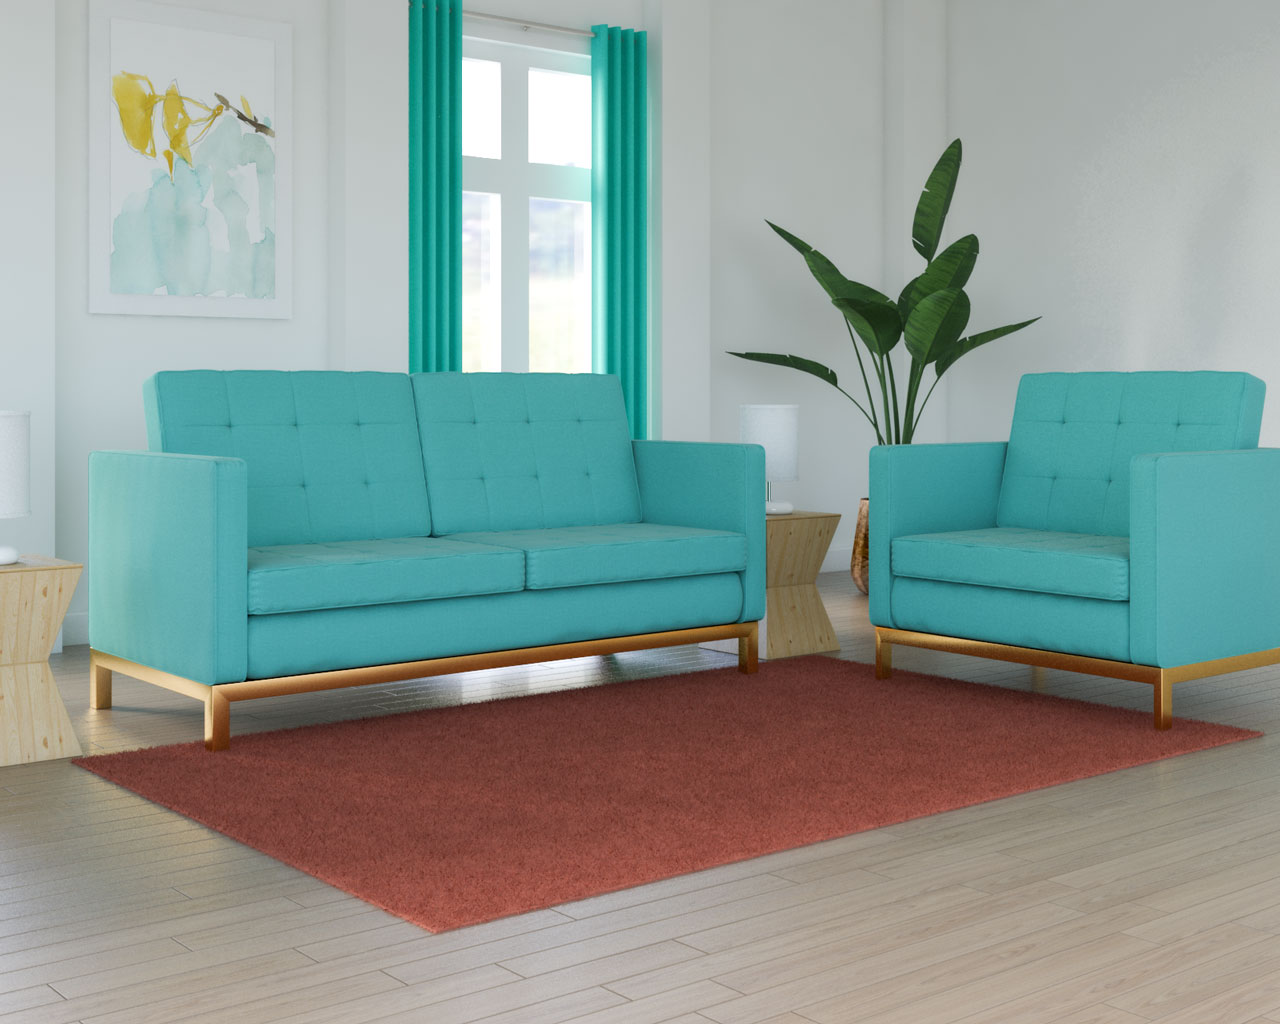 Coral rug with teal couch